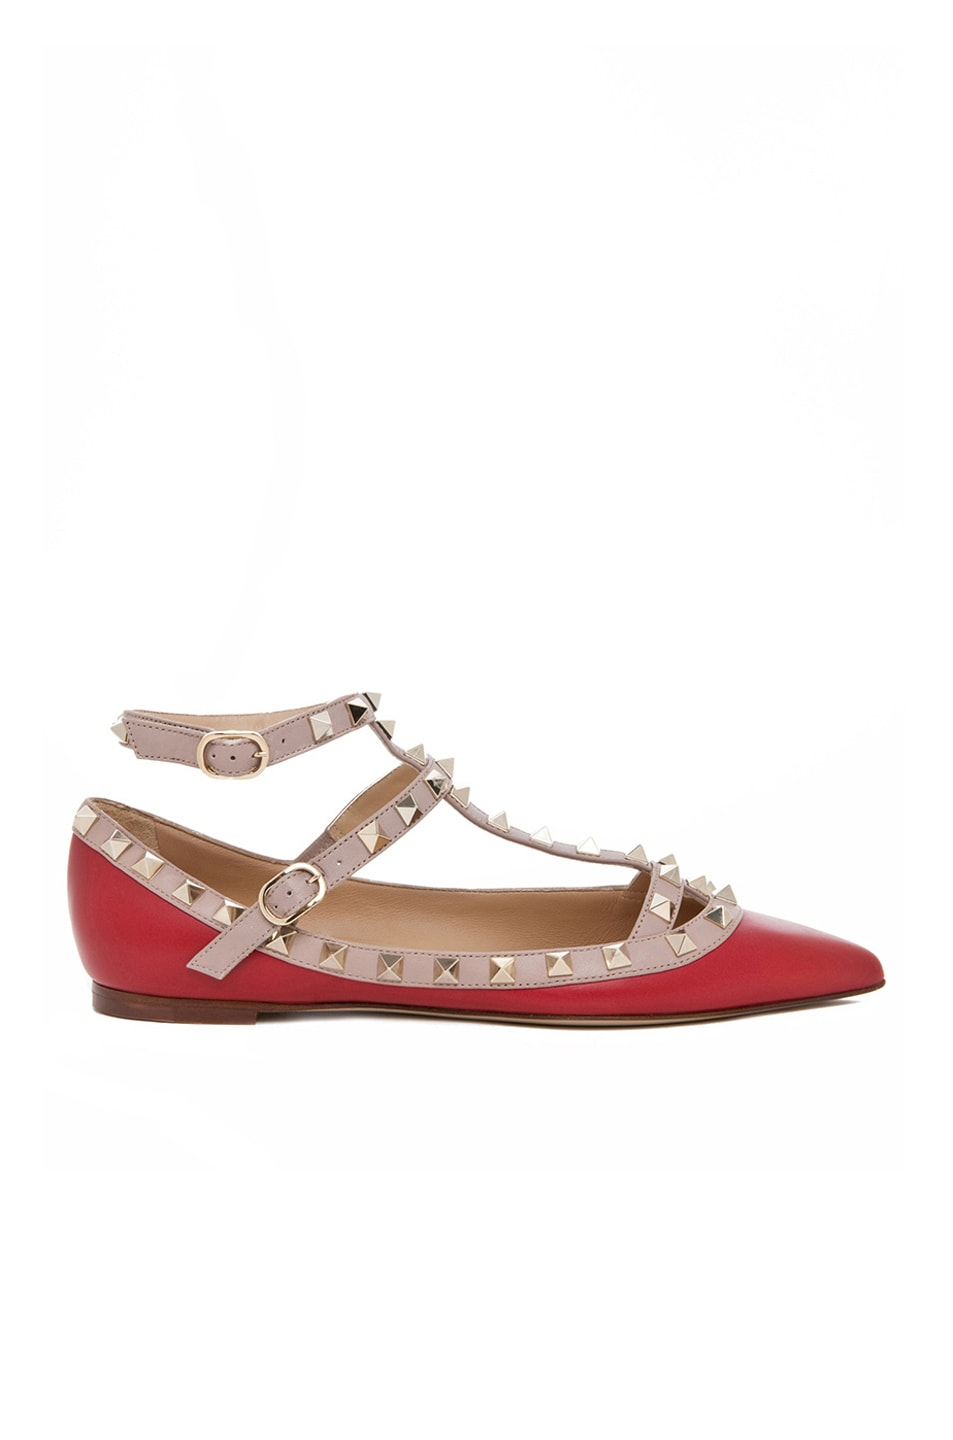 Image 1 of Valentino Rockstud Leather Cage Flats in Red